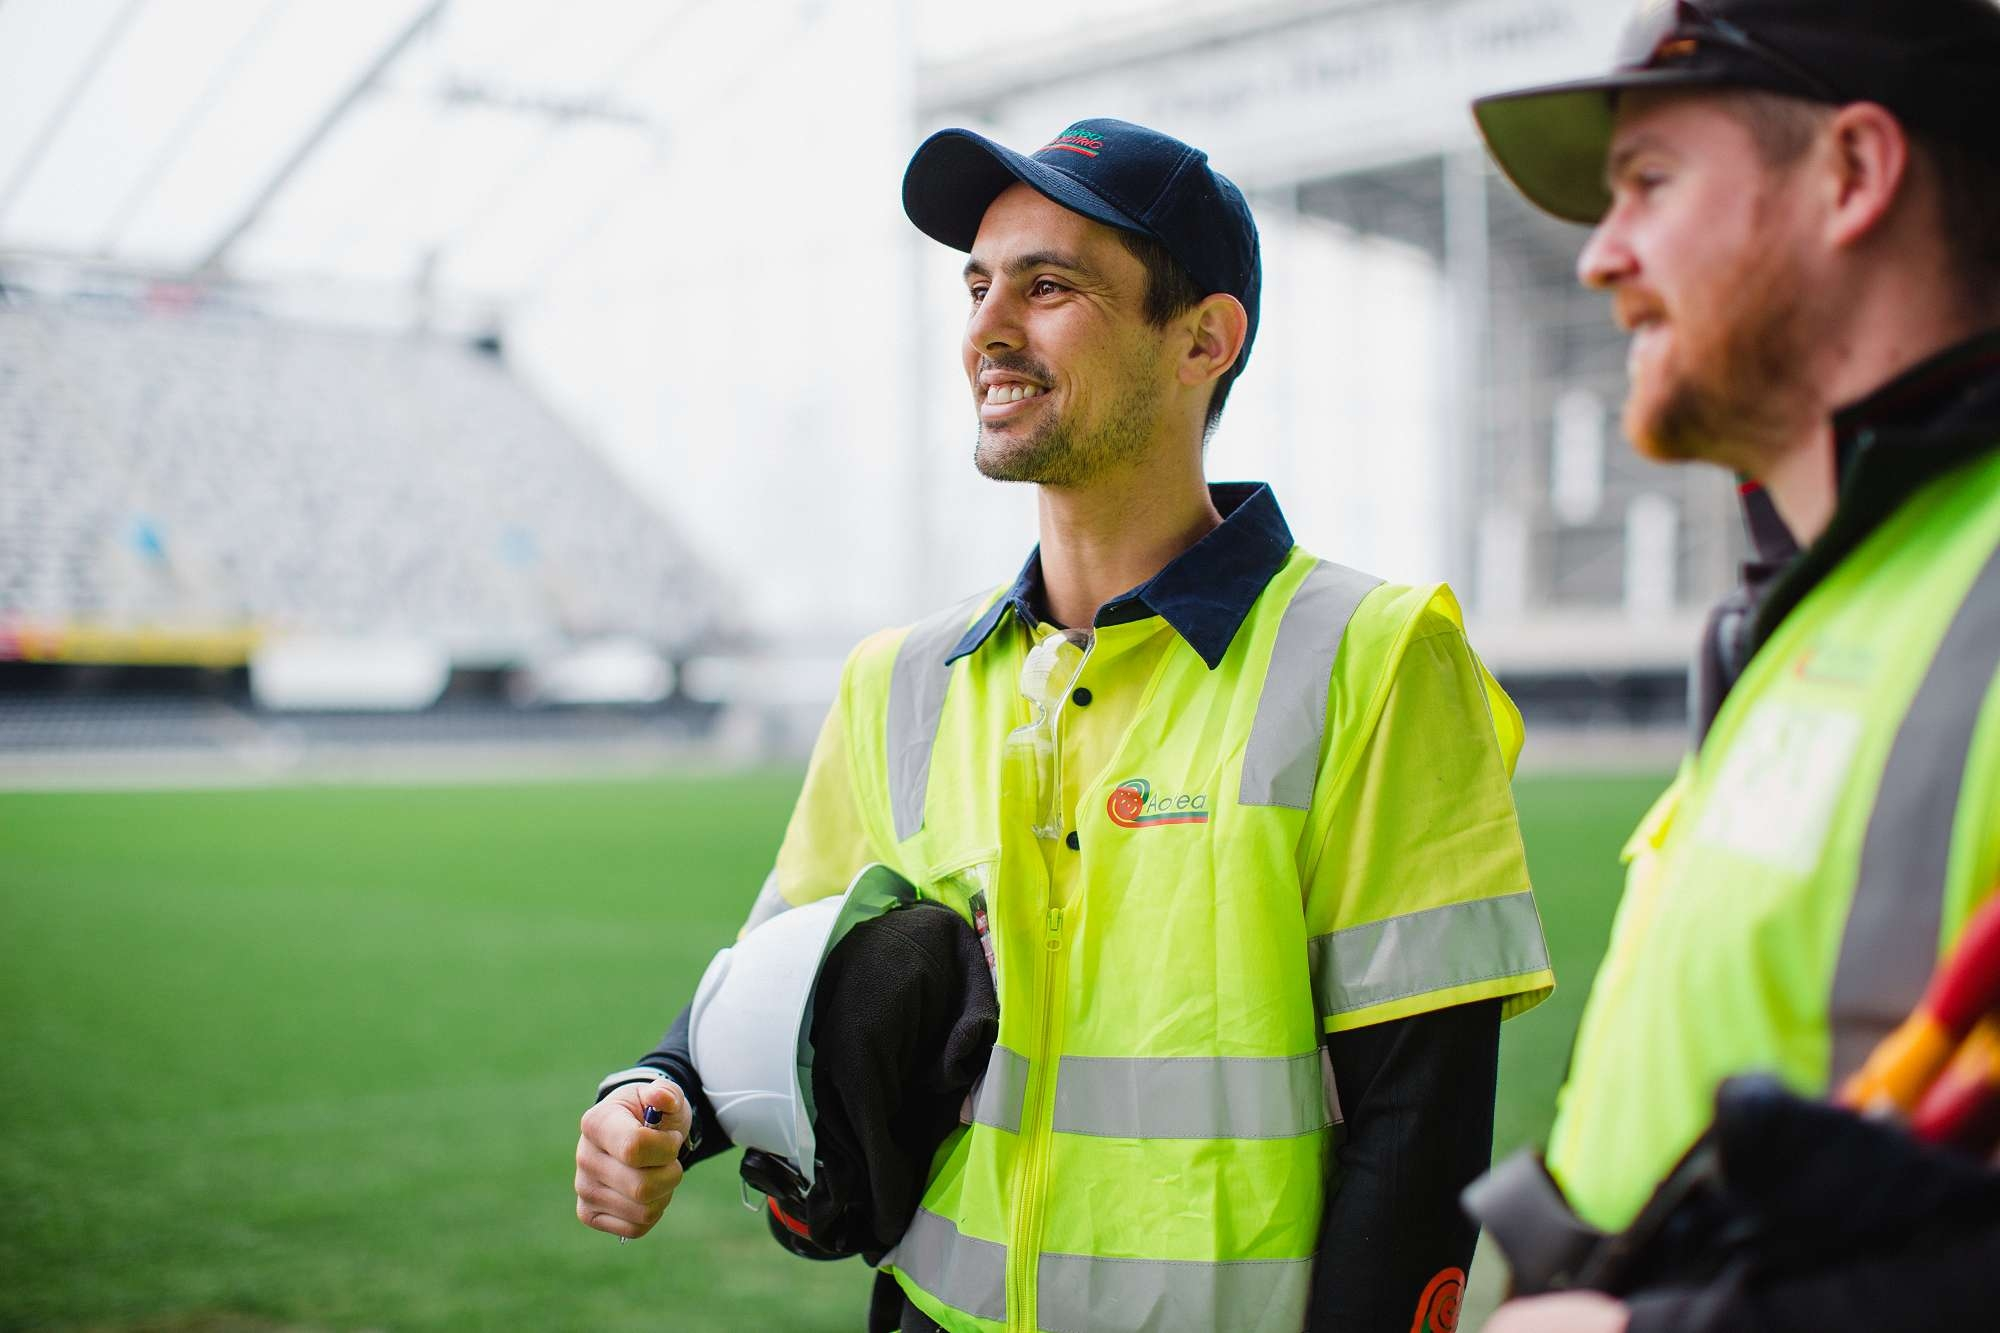 Q&A with Anaru Kitchen - Working for Aotea Group & Playing for Otago Cricket